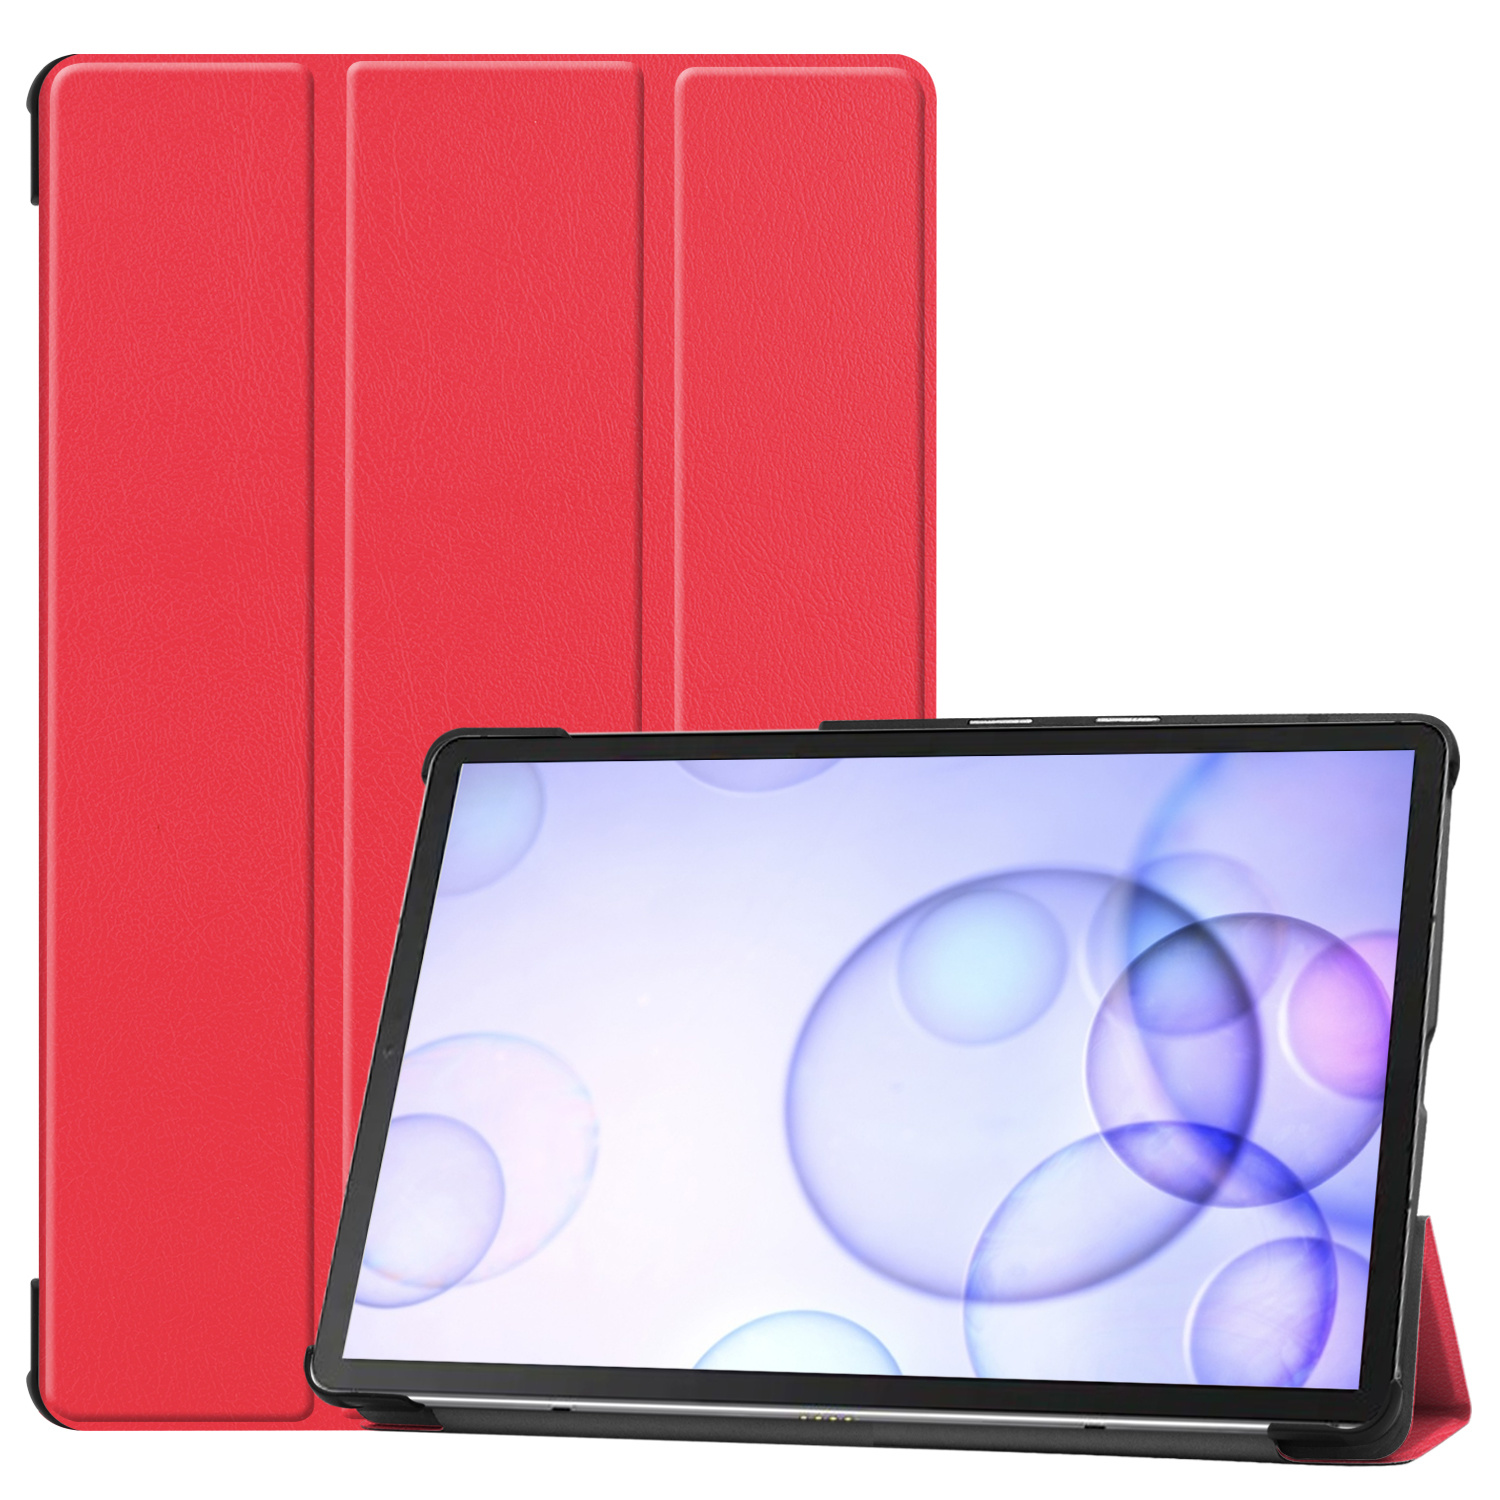 Lunso 3-Vouw sleepcover hoes Rood voor de Samsung Galaxy Tab S6